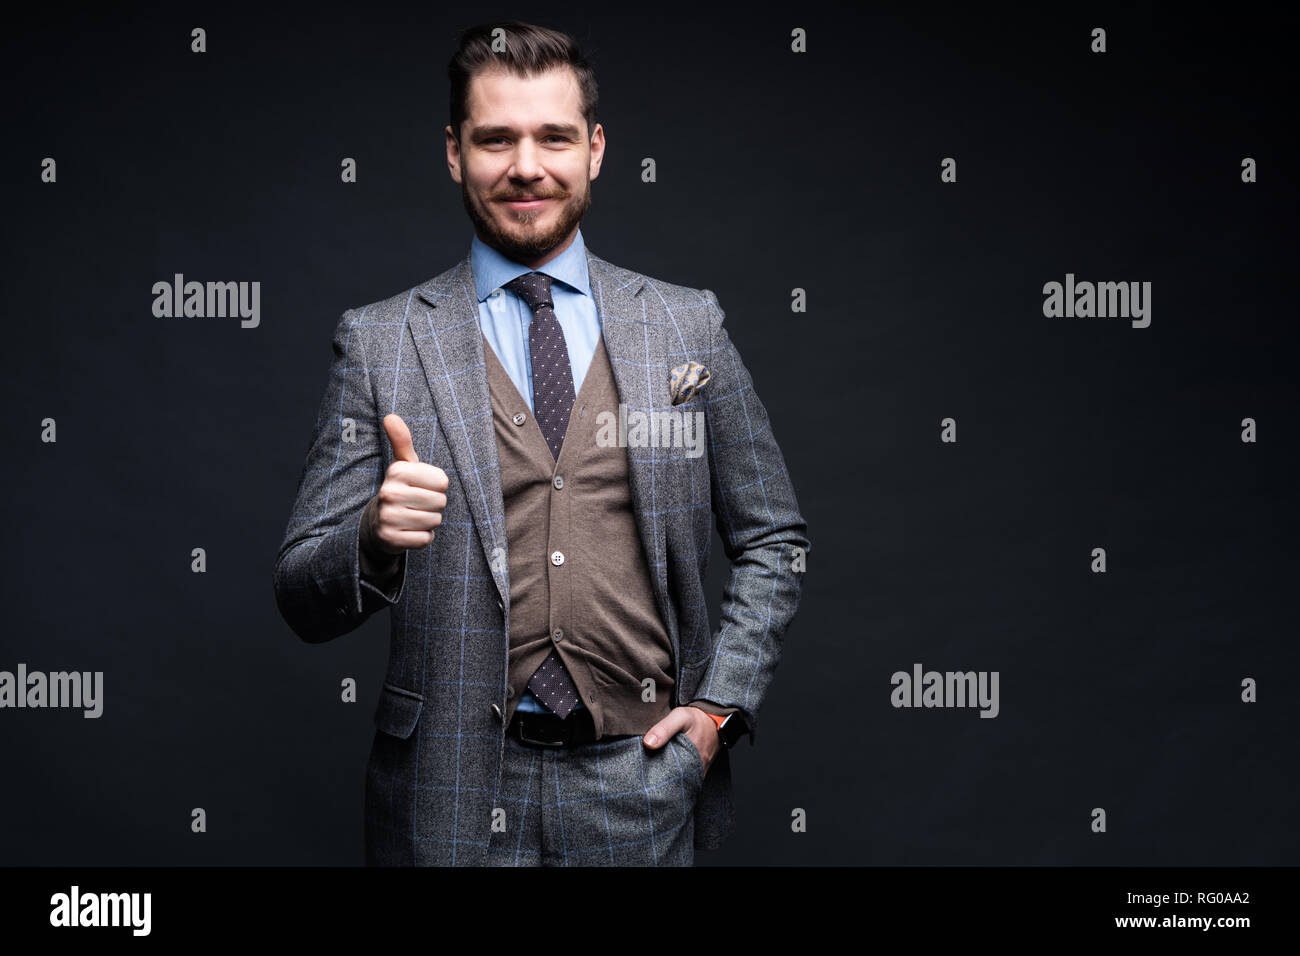 Portrait of excited satisfied cheerful confident positive handsome demonstrating thumbs-up pointing up isolated on black background. - Stock Image